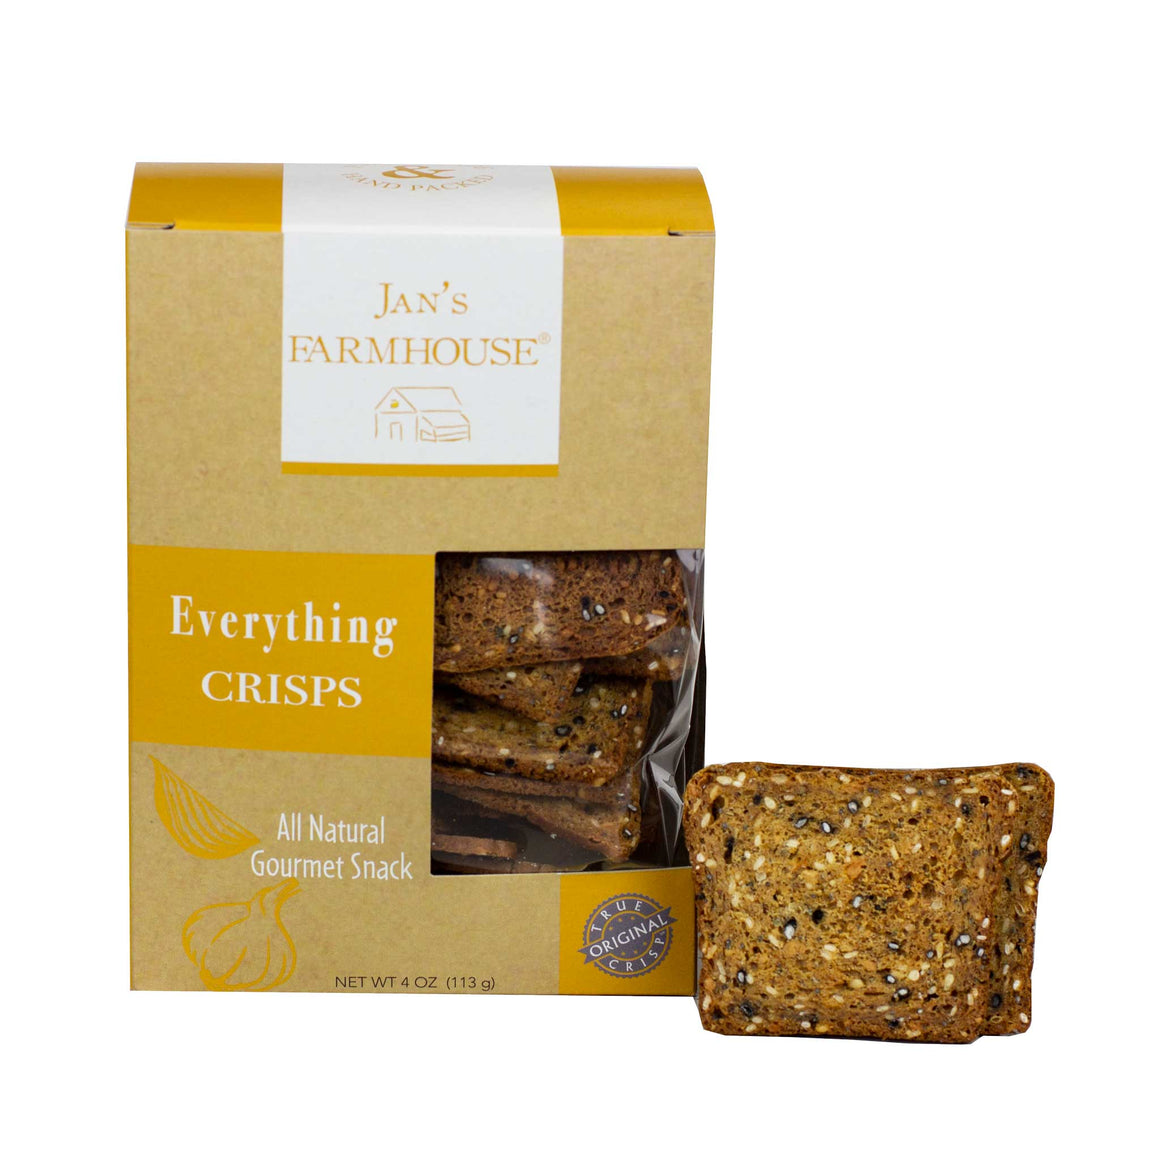 Jan's Farmhouse Everything Crisps